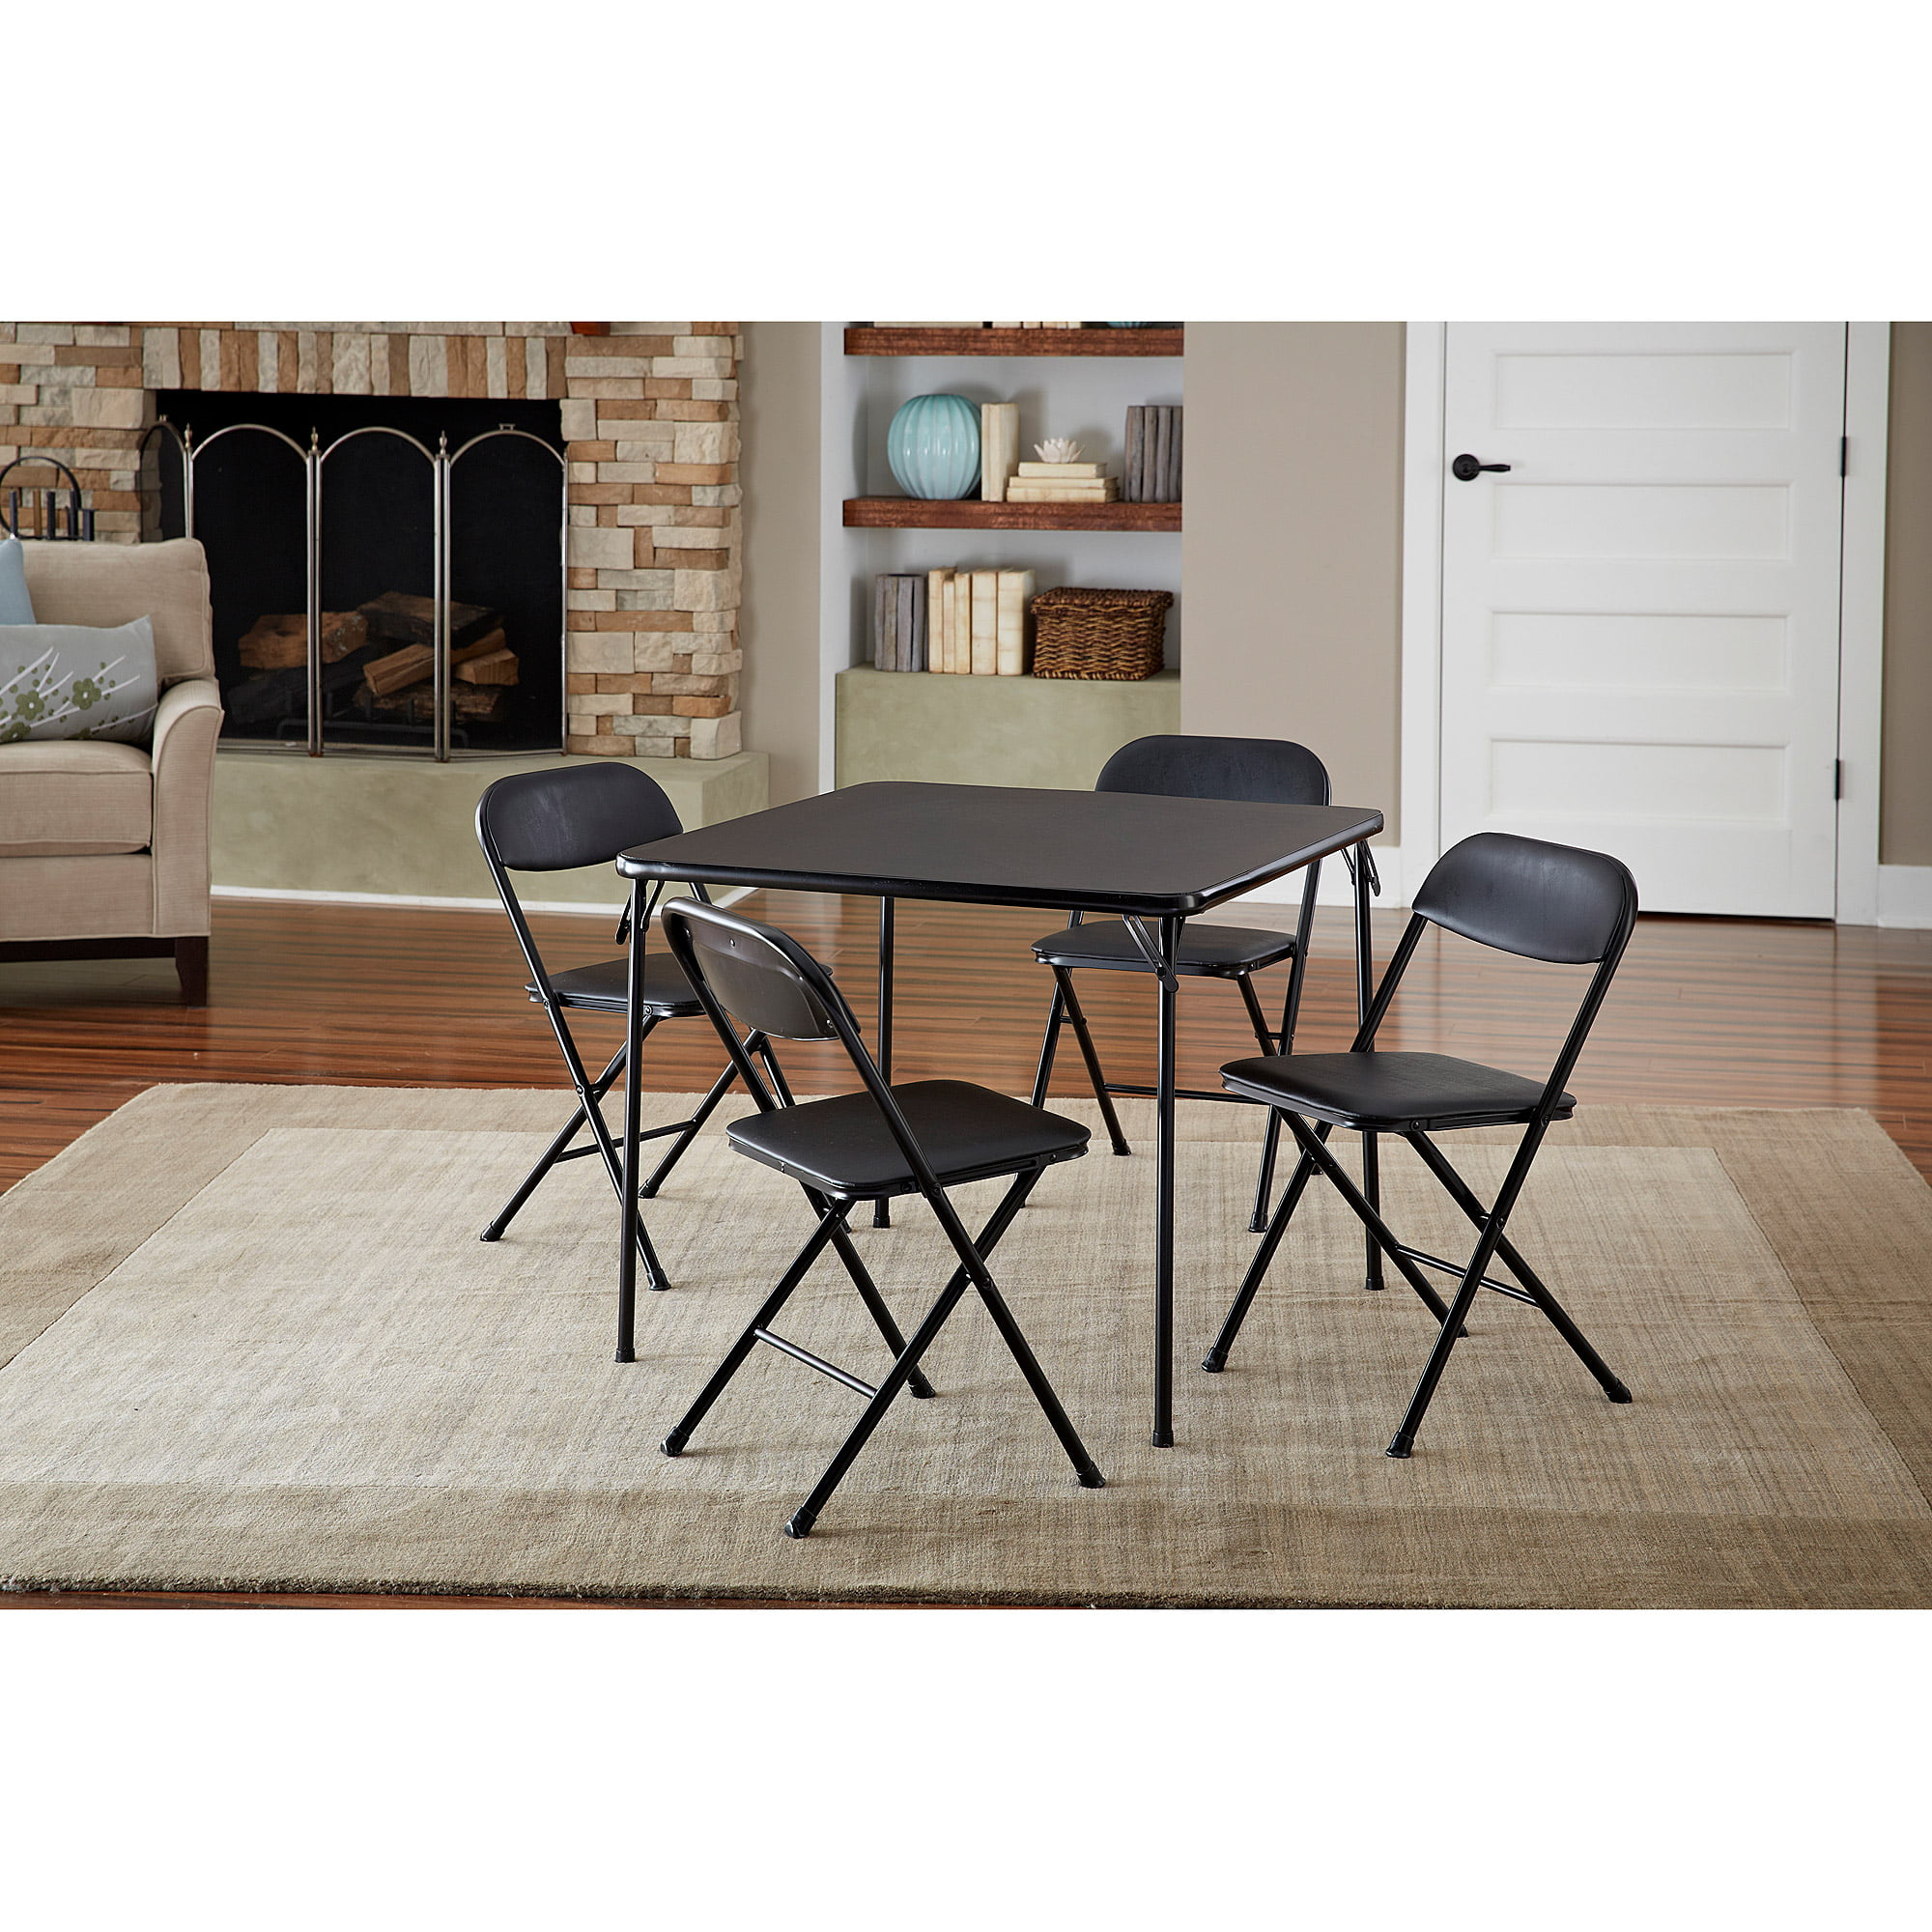 cosco 5 piece card table set black walmartcom - Table And Chair Sets Kitchen